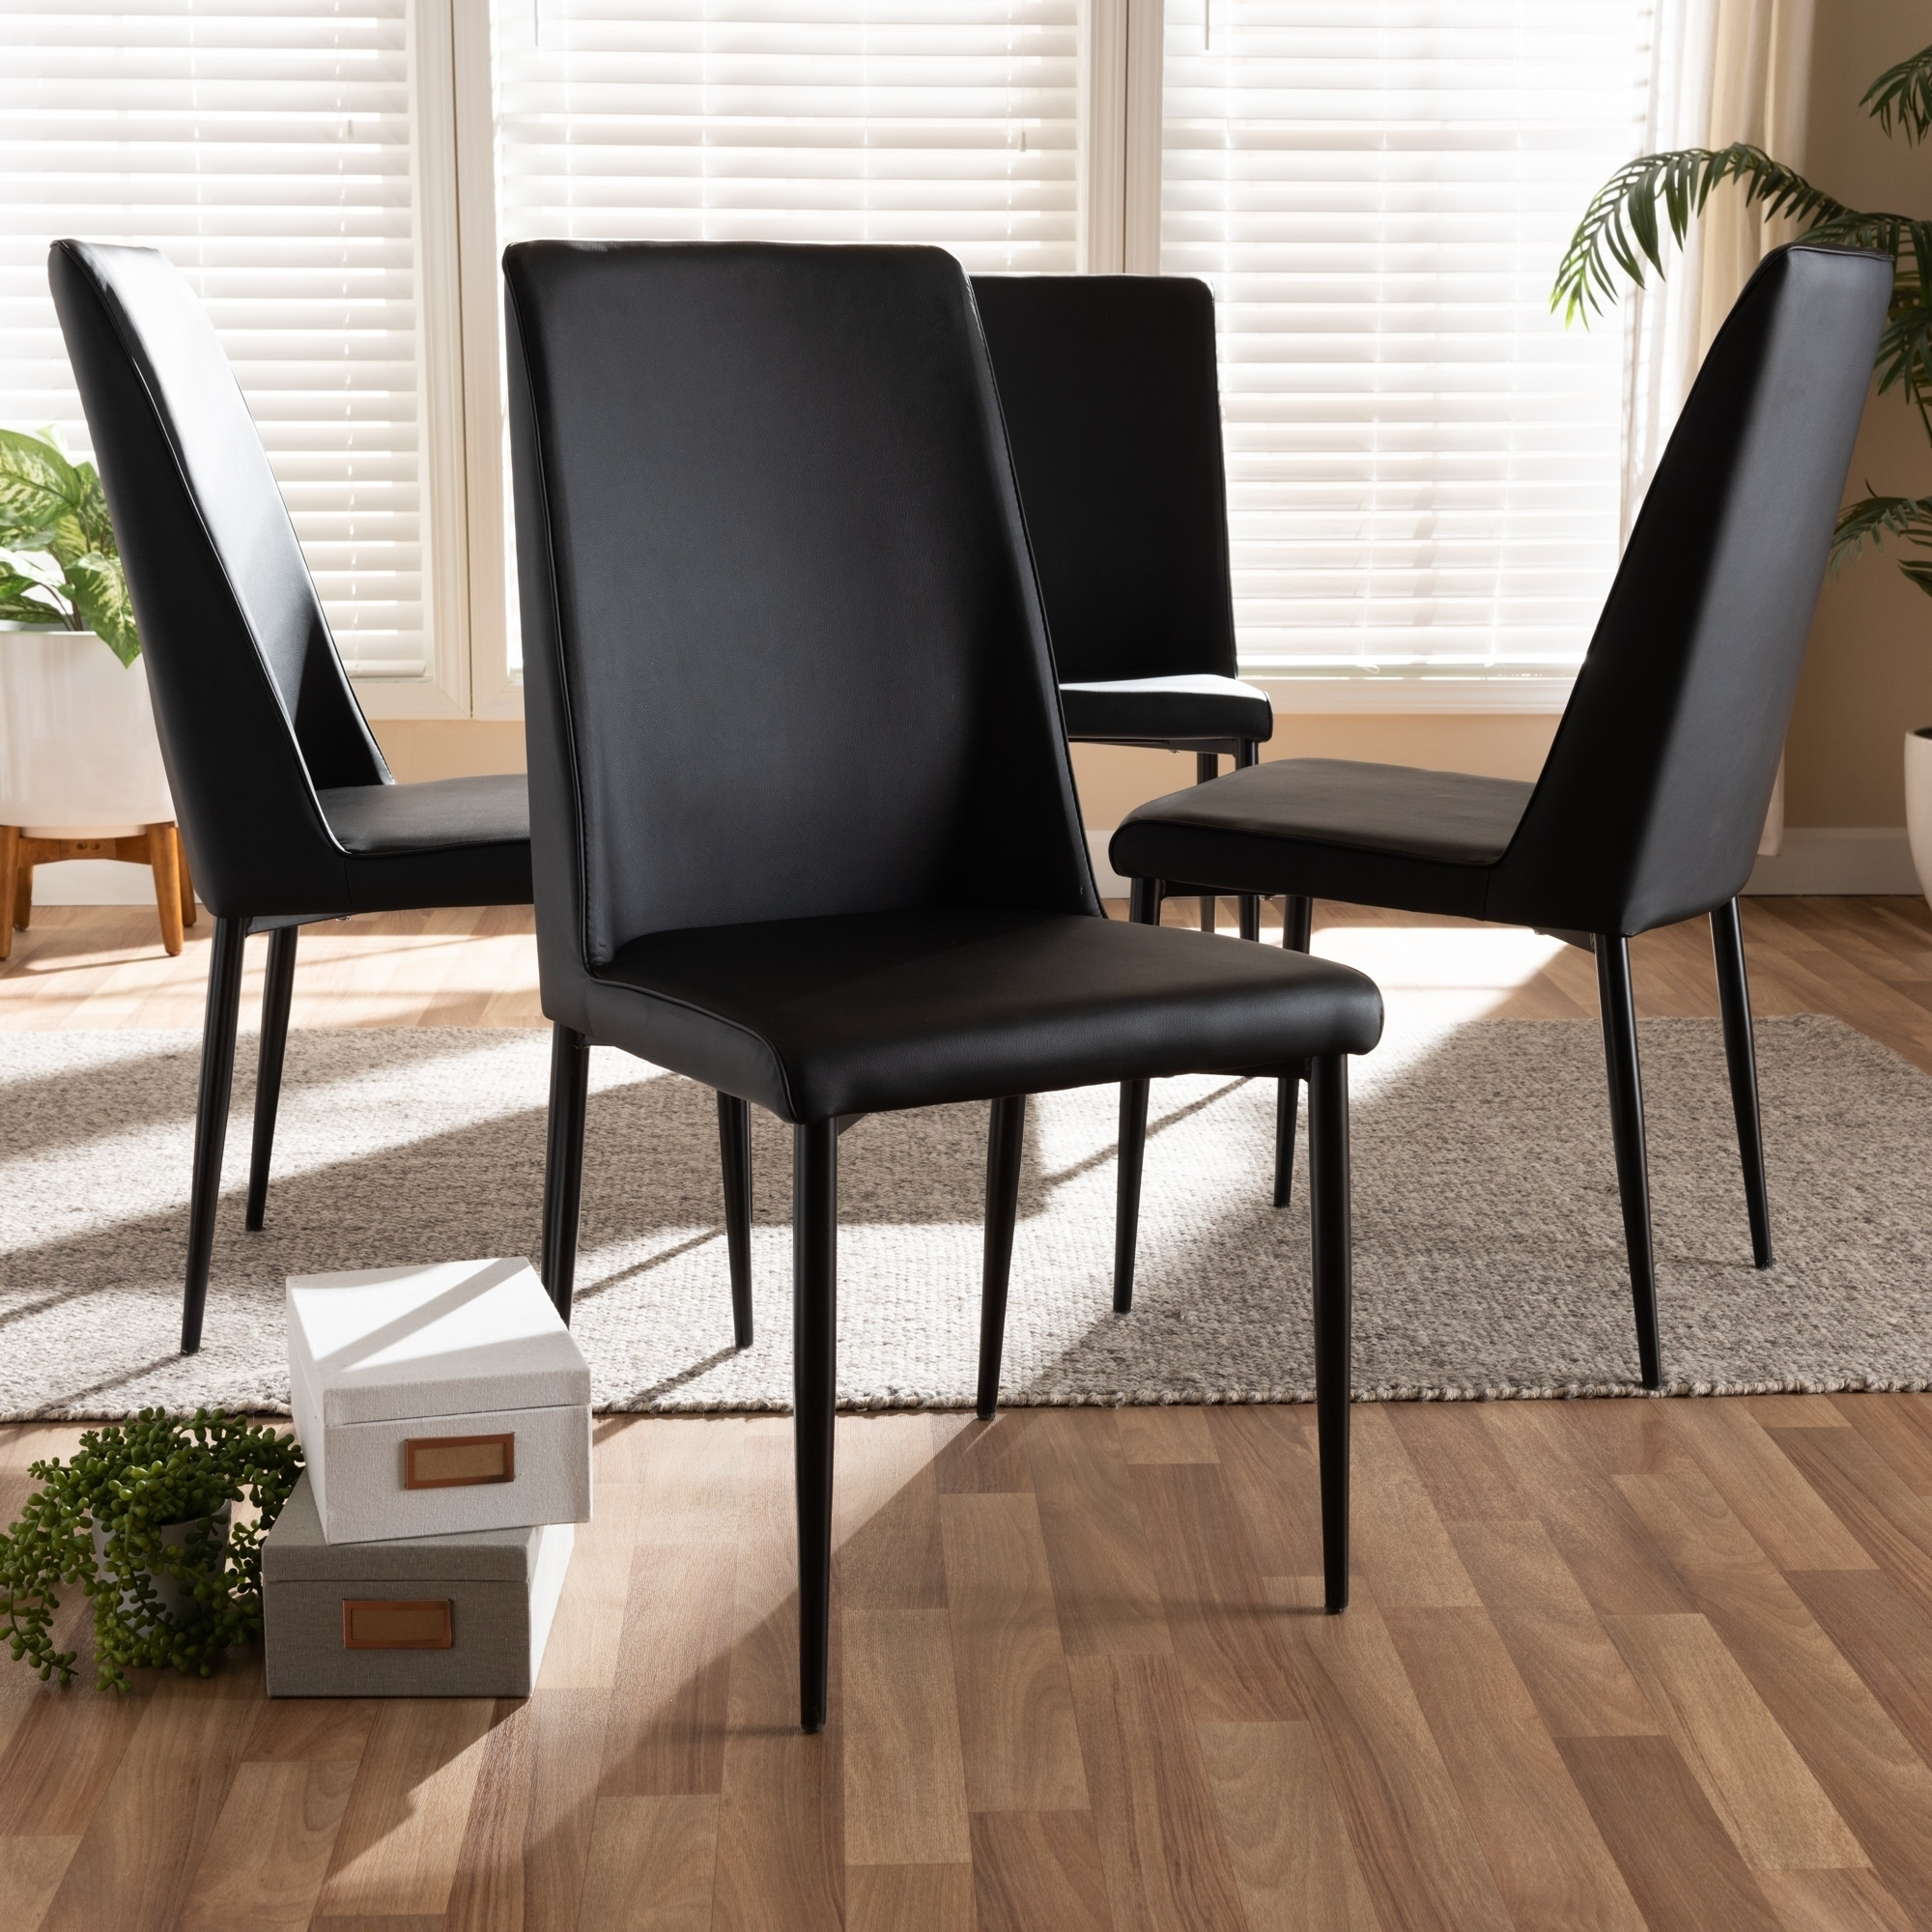 Baxton Studio Modern Faux Leather Dining Chair 4-Piece Set by  White